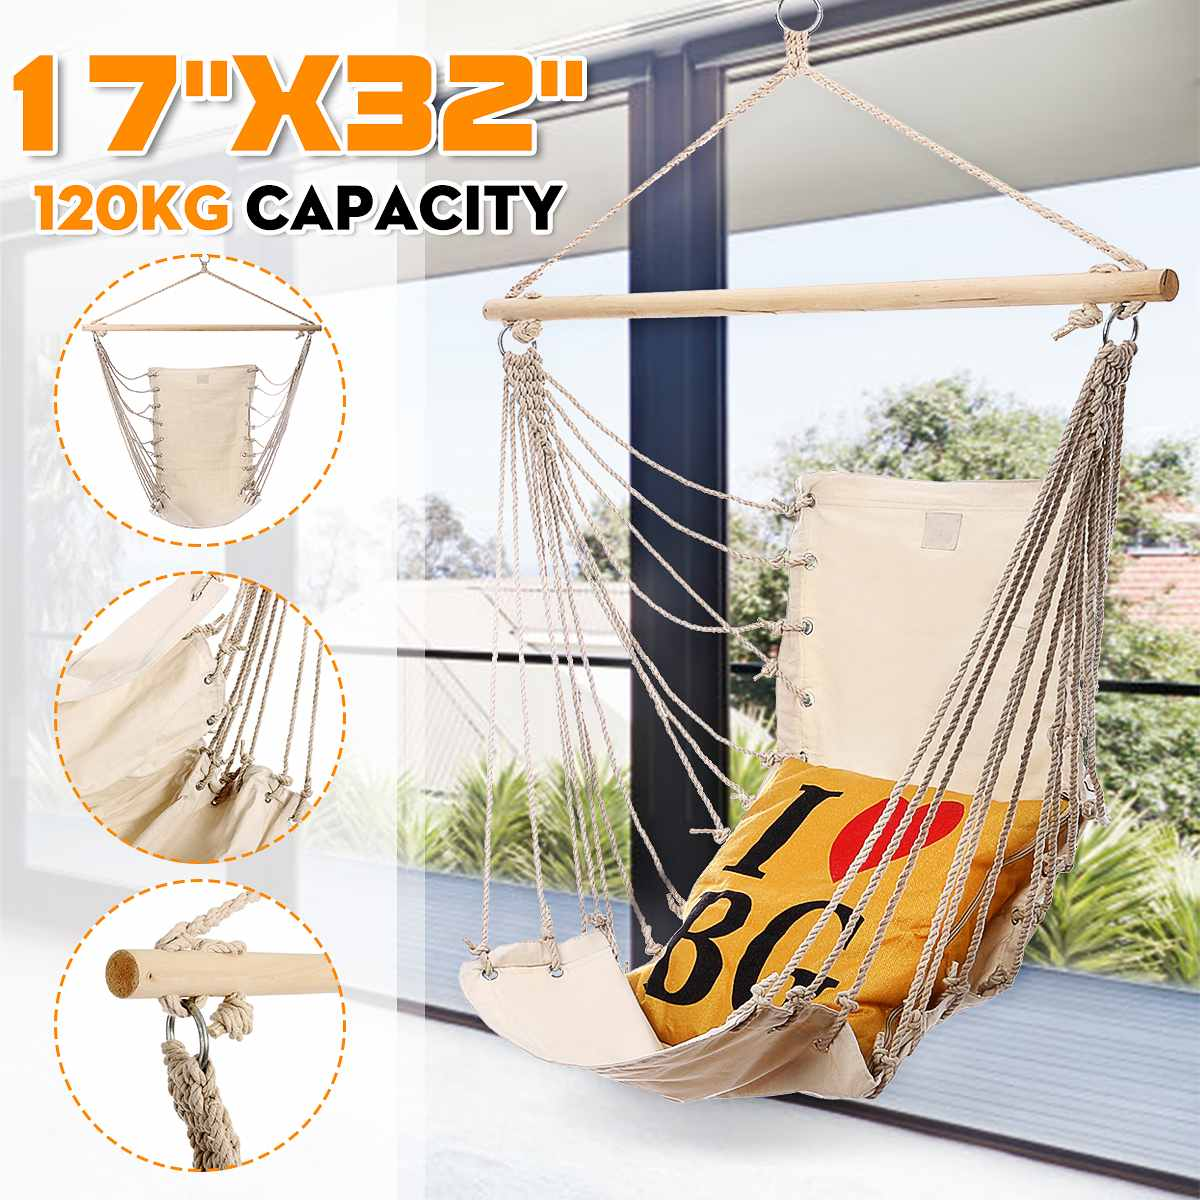 Outdoor Garden Hanging Hammock Chair Camping Single Swing Seat Relaxing Furniture For Child Adult Swinging Safety Chair|  - title=